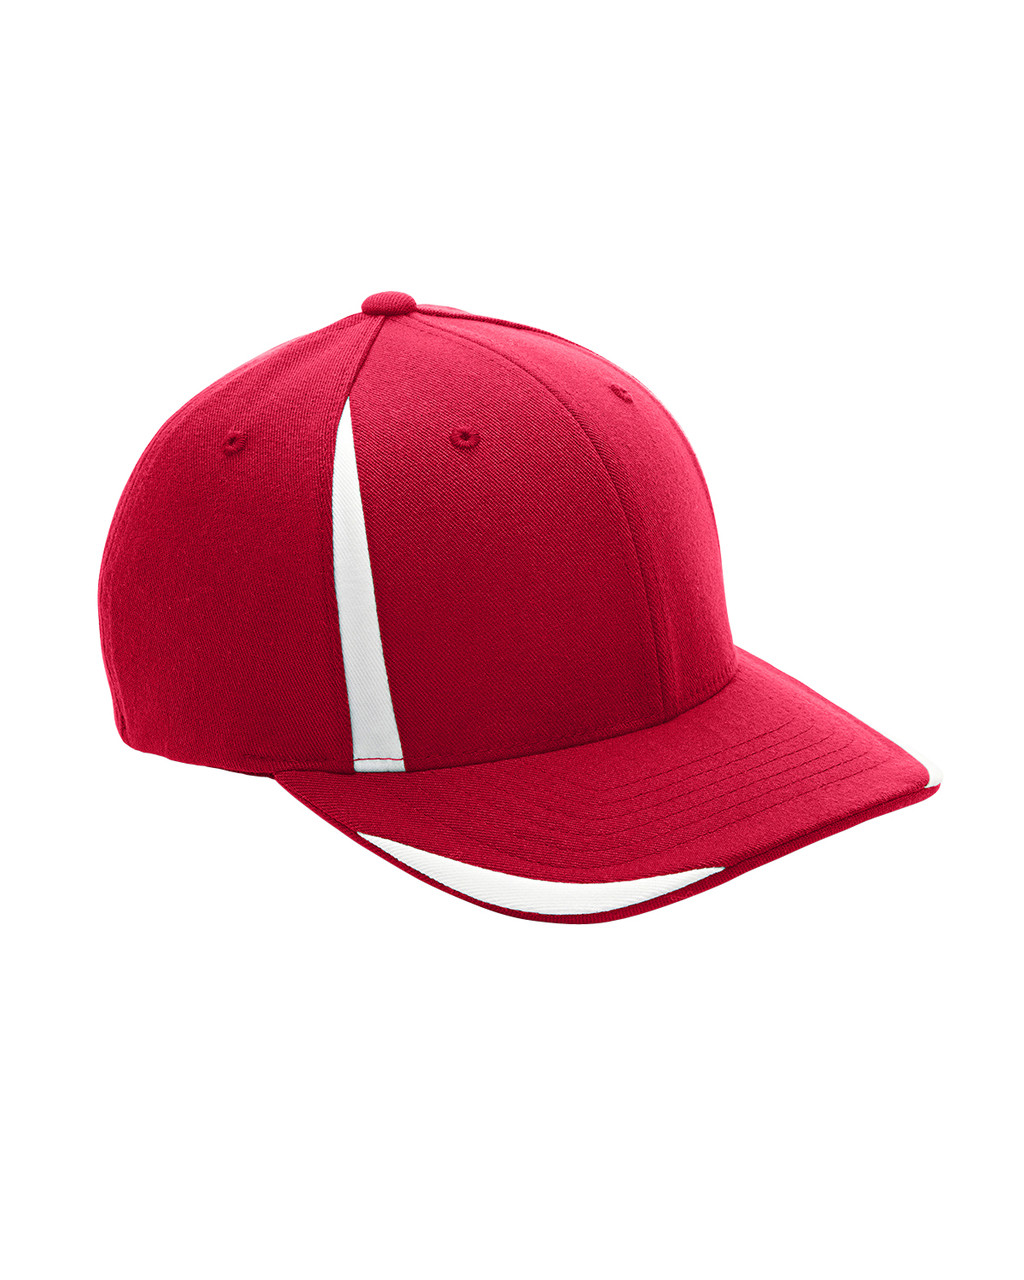 Red/White - ATB102 Flexfit for Team 365 Pro-Formance Front Sweep Cap